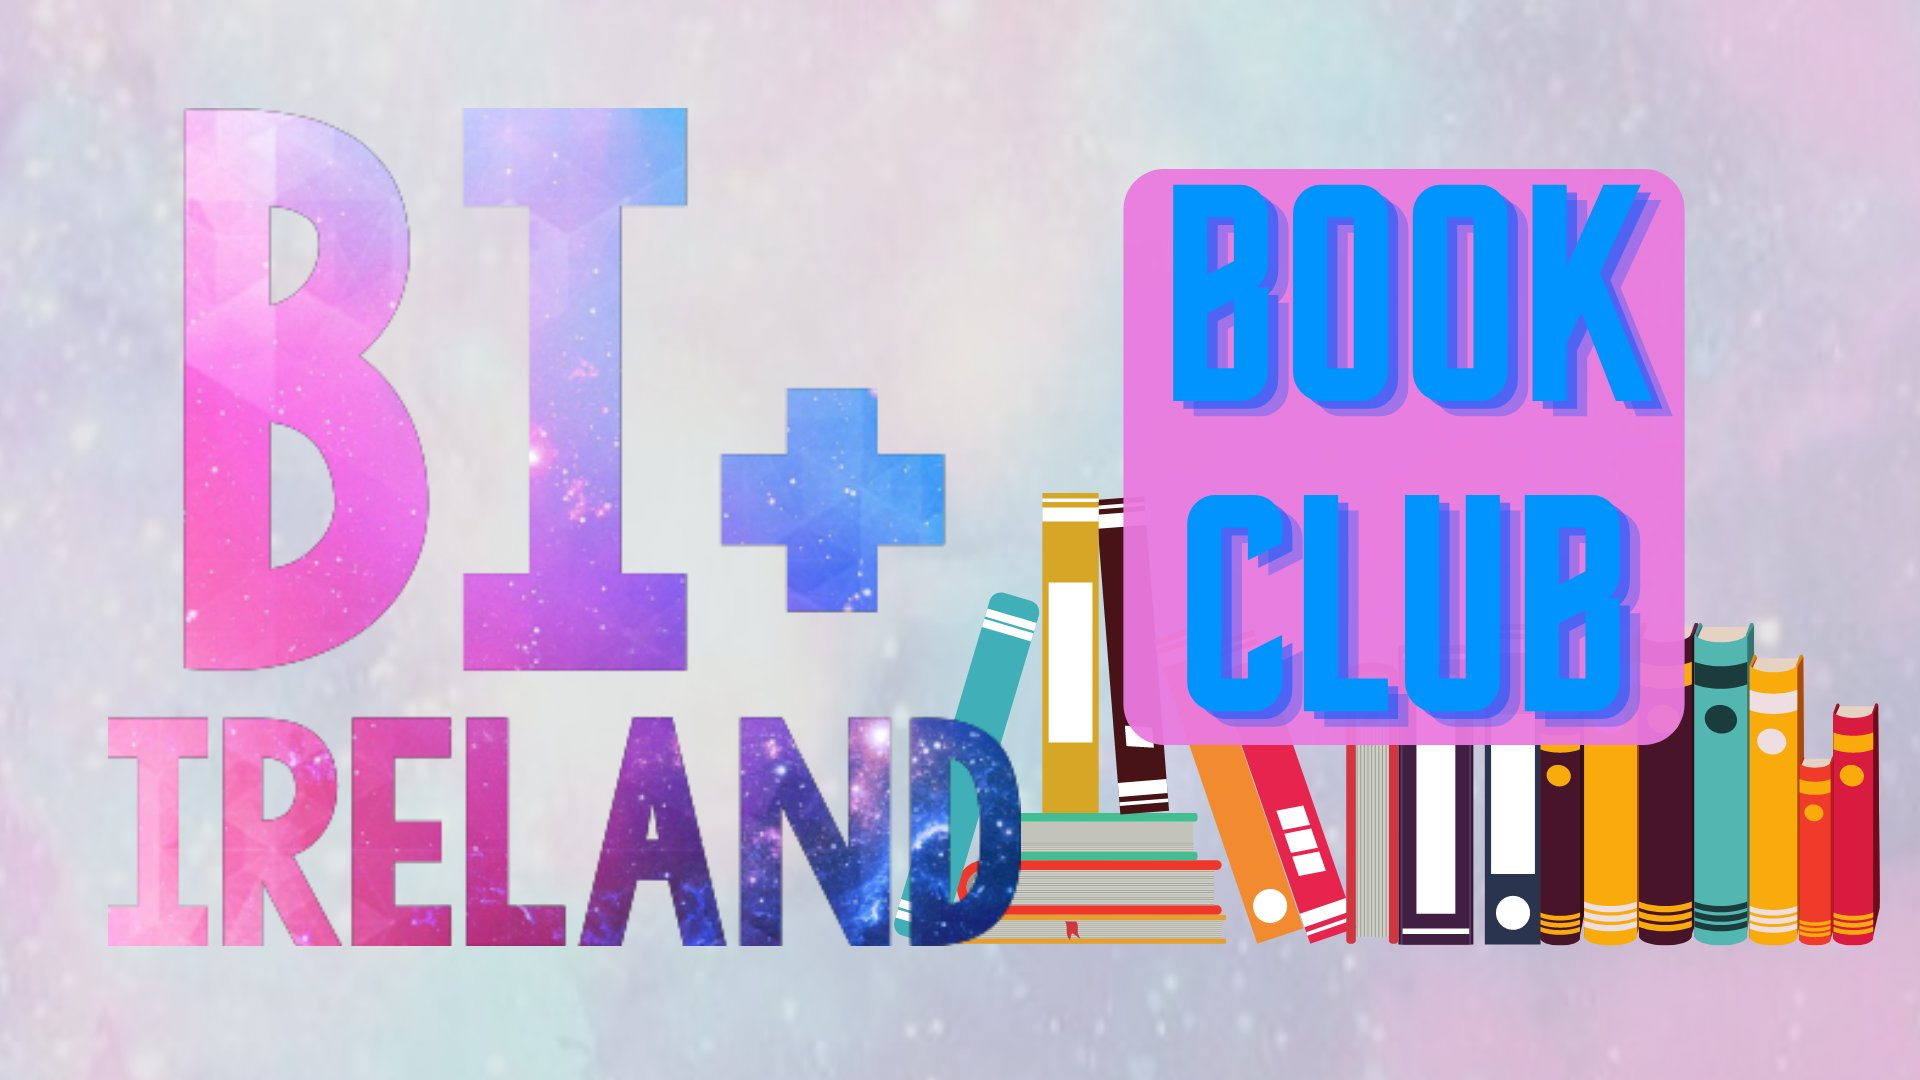 Promotional image for Bi+ Ireland book club, among many LGBTQ+ support services and spaces bringing in new projects during the lockdown